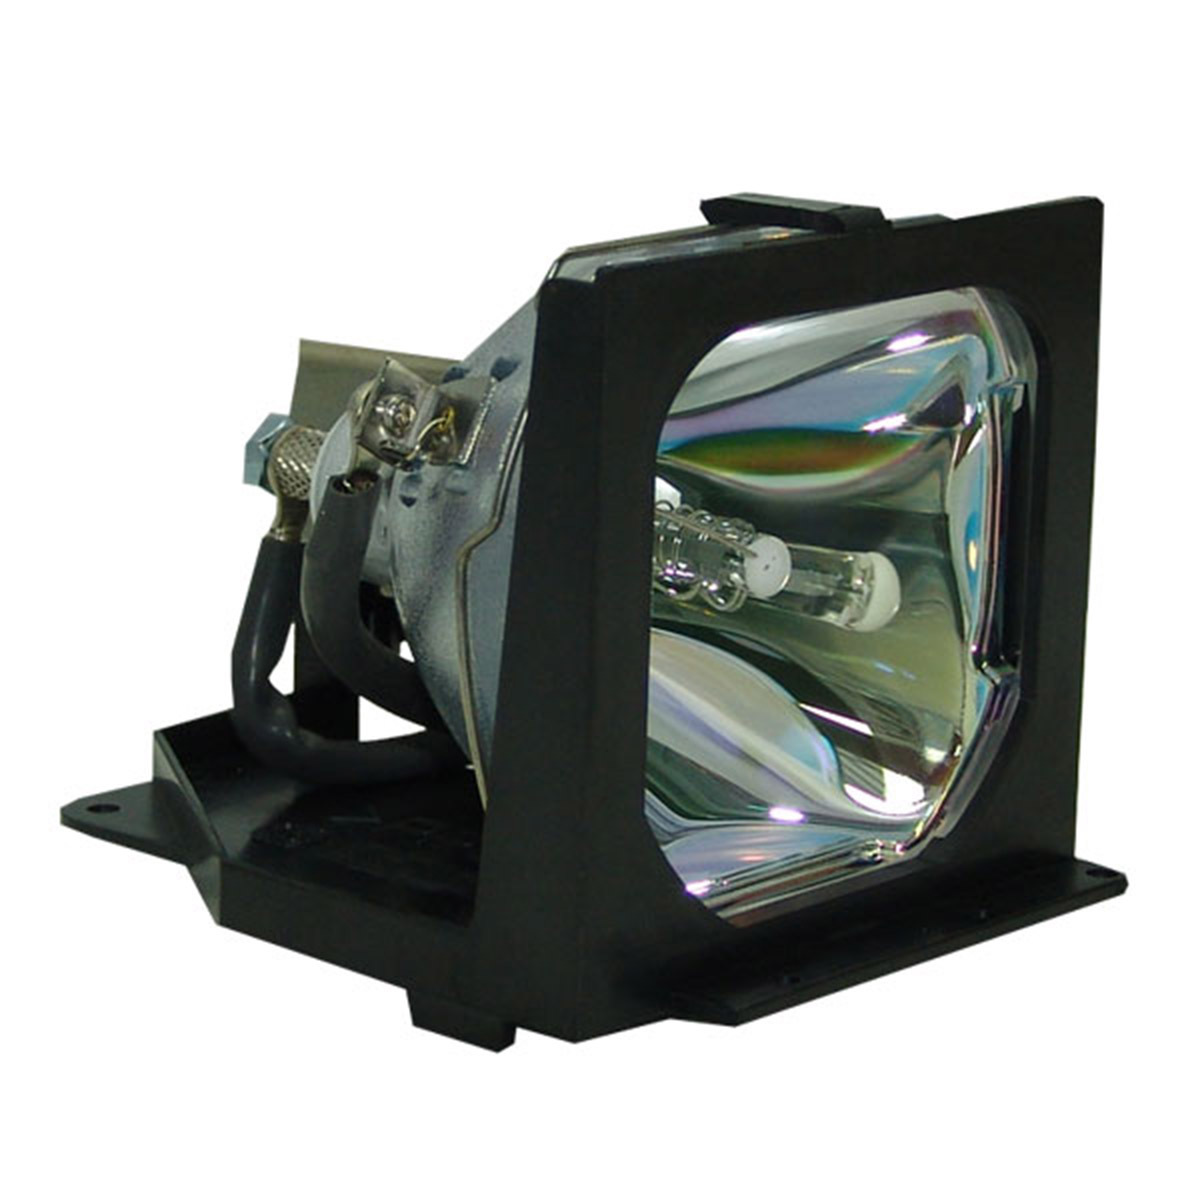 Primary image for Geha 60-200758 Compatible Projector Lamp Module